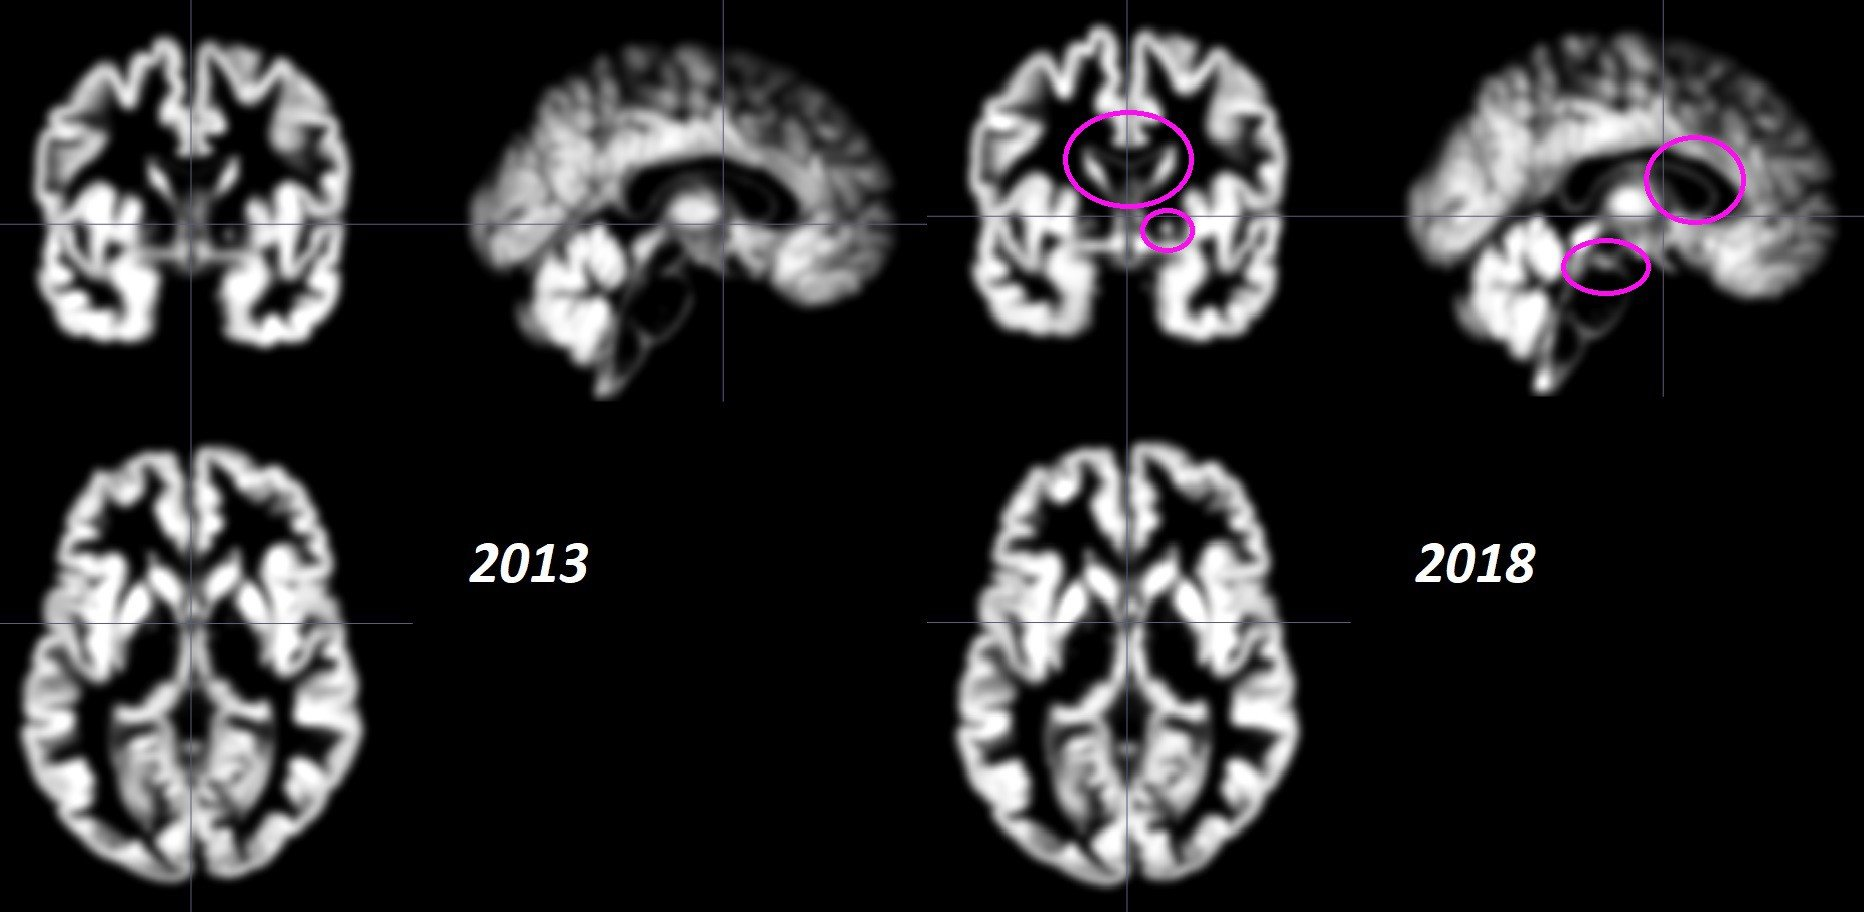 Source: Grey matter scans of my brain taken in 2013 and 2018. Although subtle, there is greater grey matter density in the scan from 2018. Unlike the comparison scans above, these scans have been processed using a normalization technique which is required for the analysis.